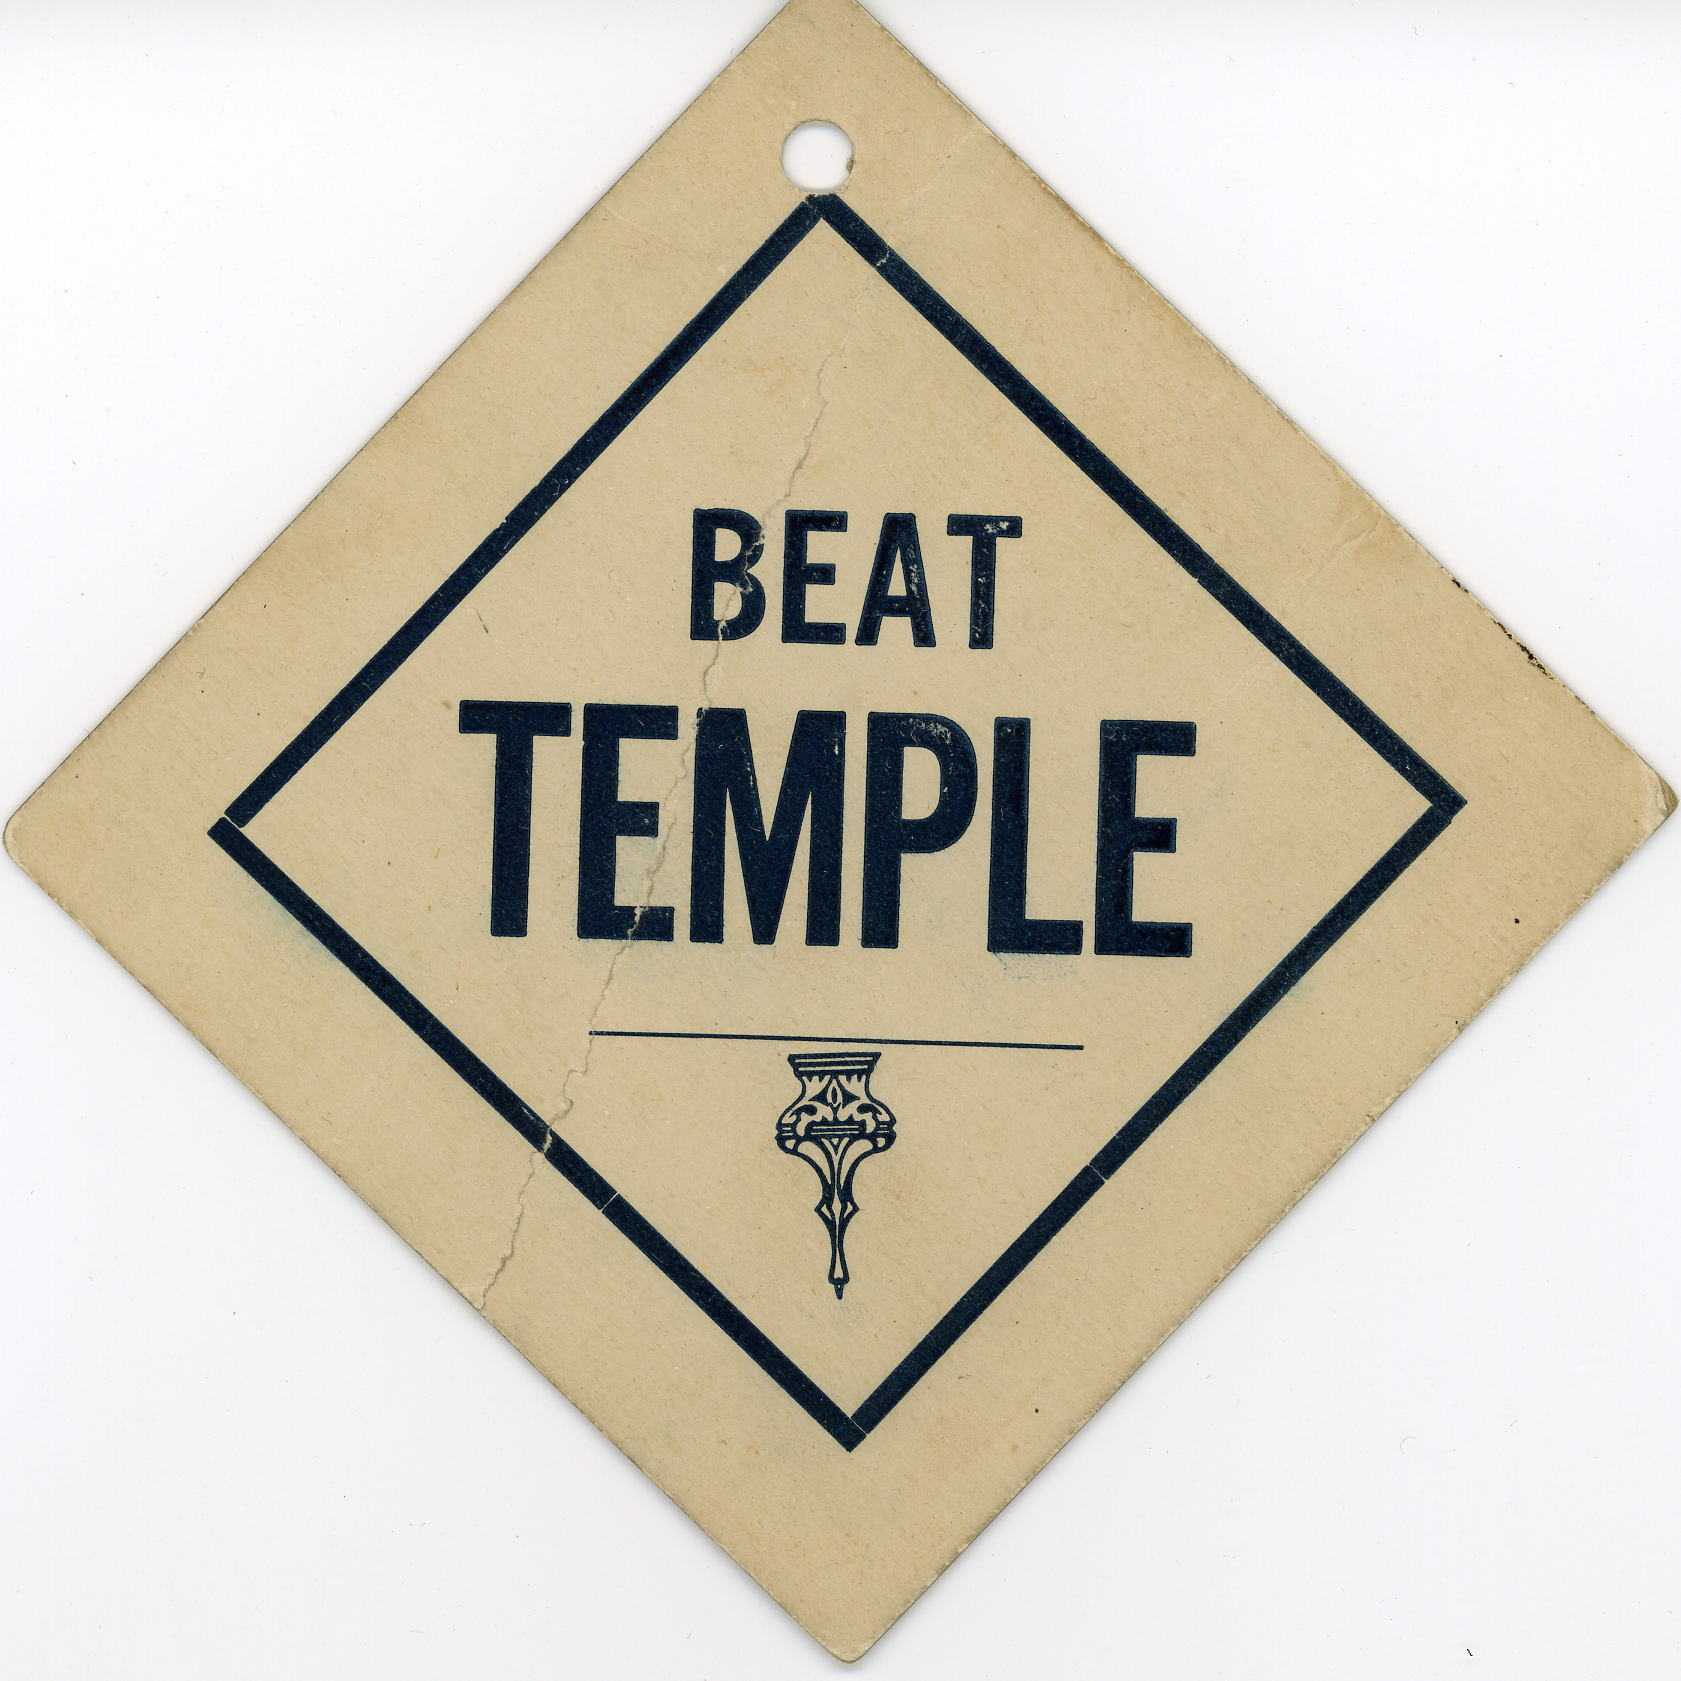 �Beat Temple� placard.